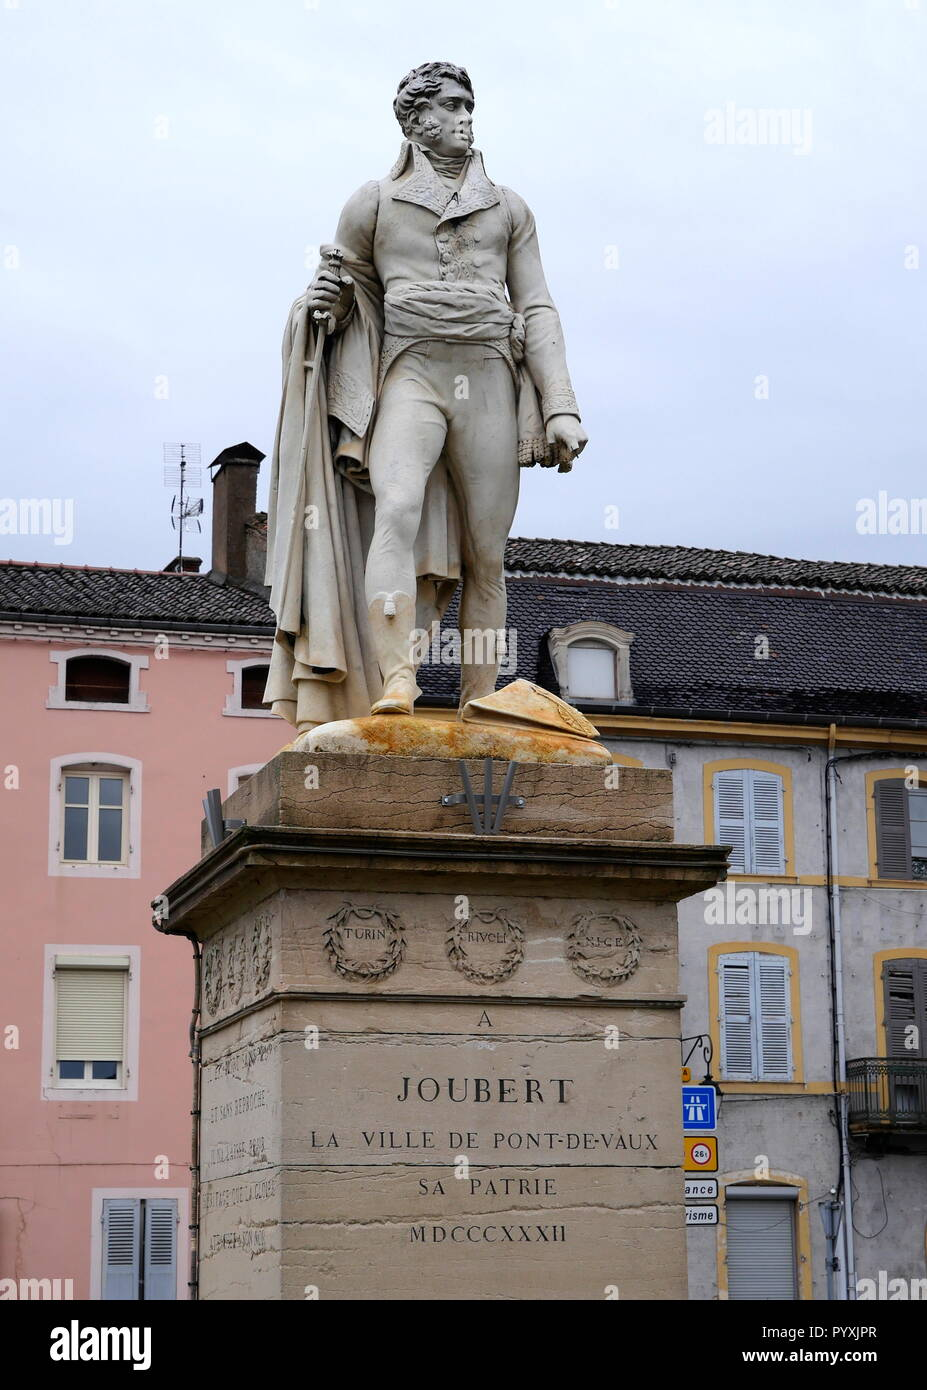 AJAXNETPHOTO. 2018. PONT DE VAUX, FRANCE. - YOUNG GENERAL -  STATUE OF SOLDIER AND GENERAL BARTHELEMY CATHERINE JOUBERT (1769-1799) IN THE TOWN CENTRE. JOUBERT WAS BORN HERE, DIED IN THE BATTLE OF NOVI, ITALY.  PHOTO:JONATHAN EASTLAND/AJAX REF:GX8_180910_852 - Stock Image